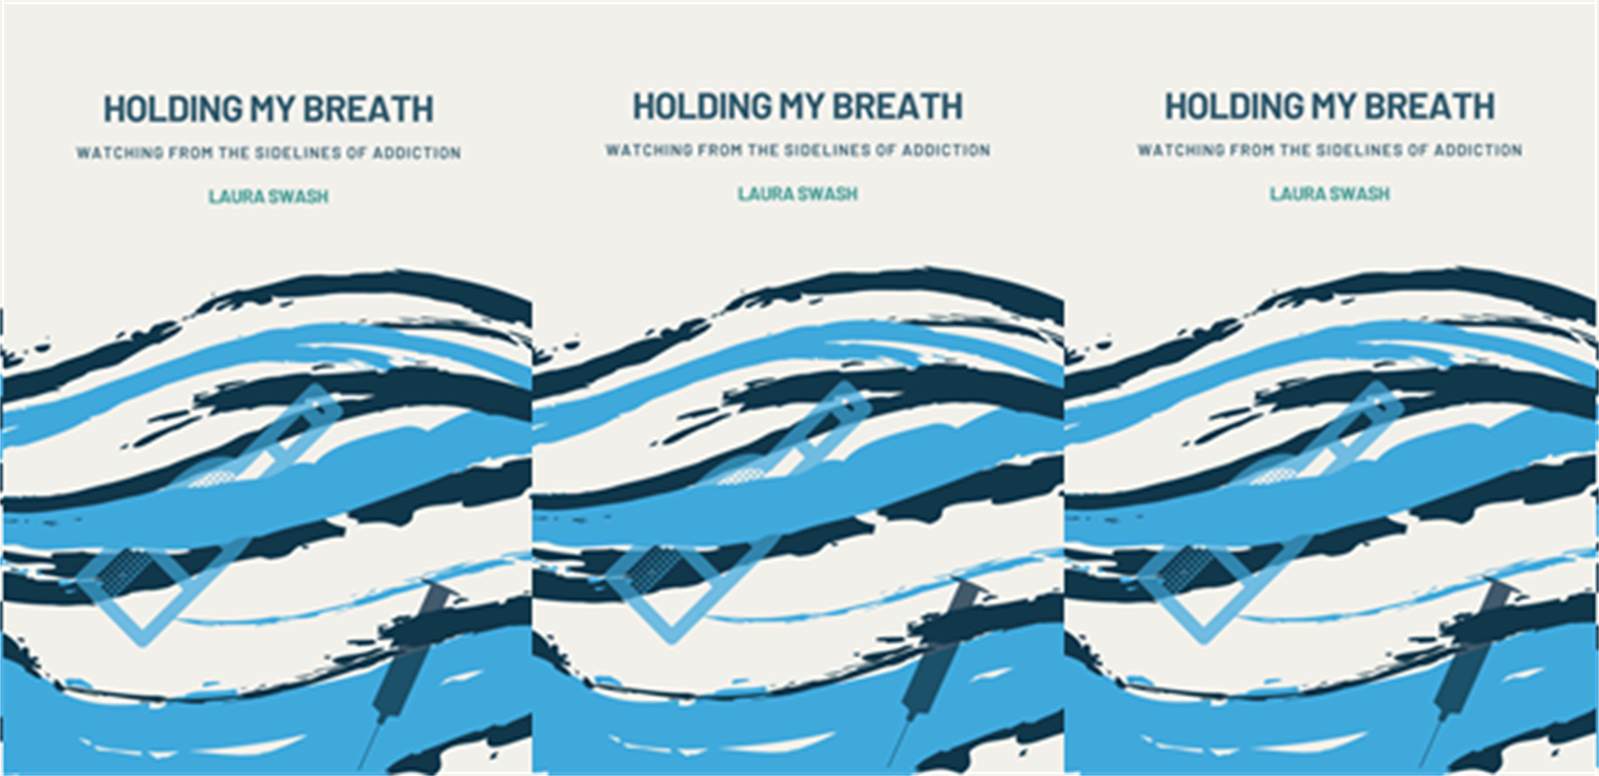 Holding My Breath book cover